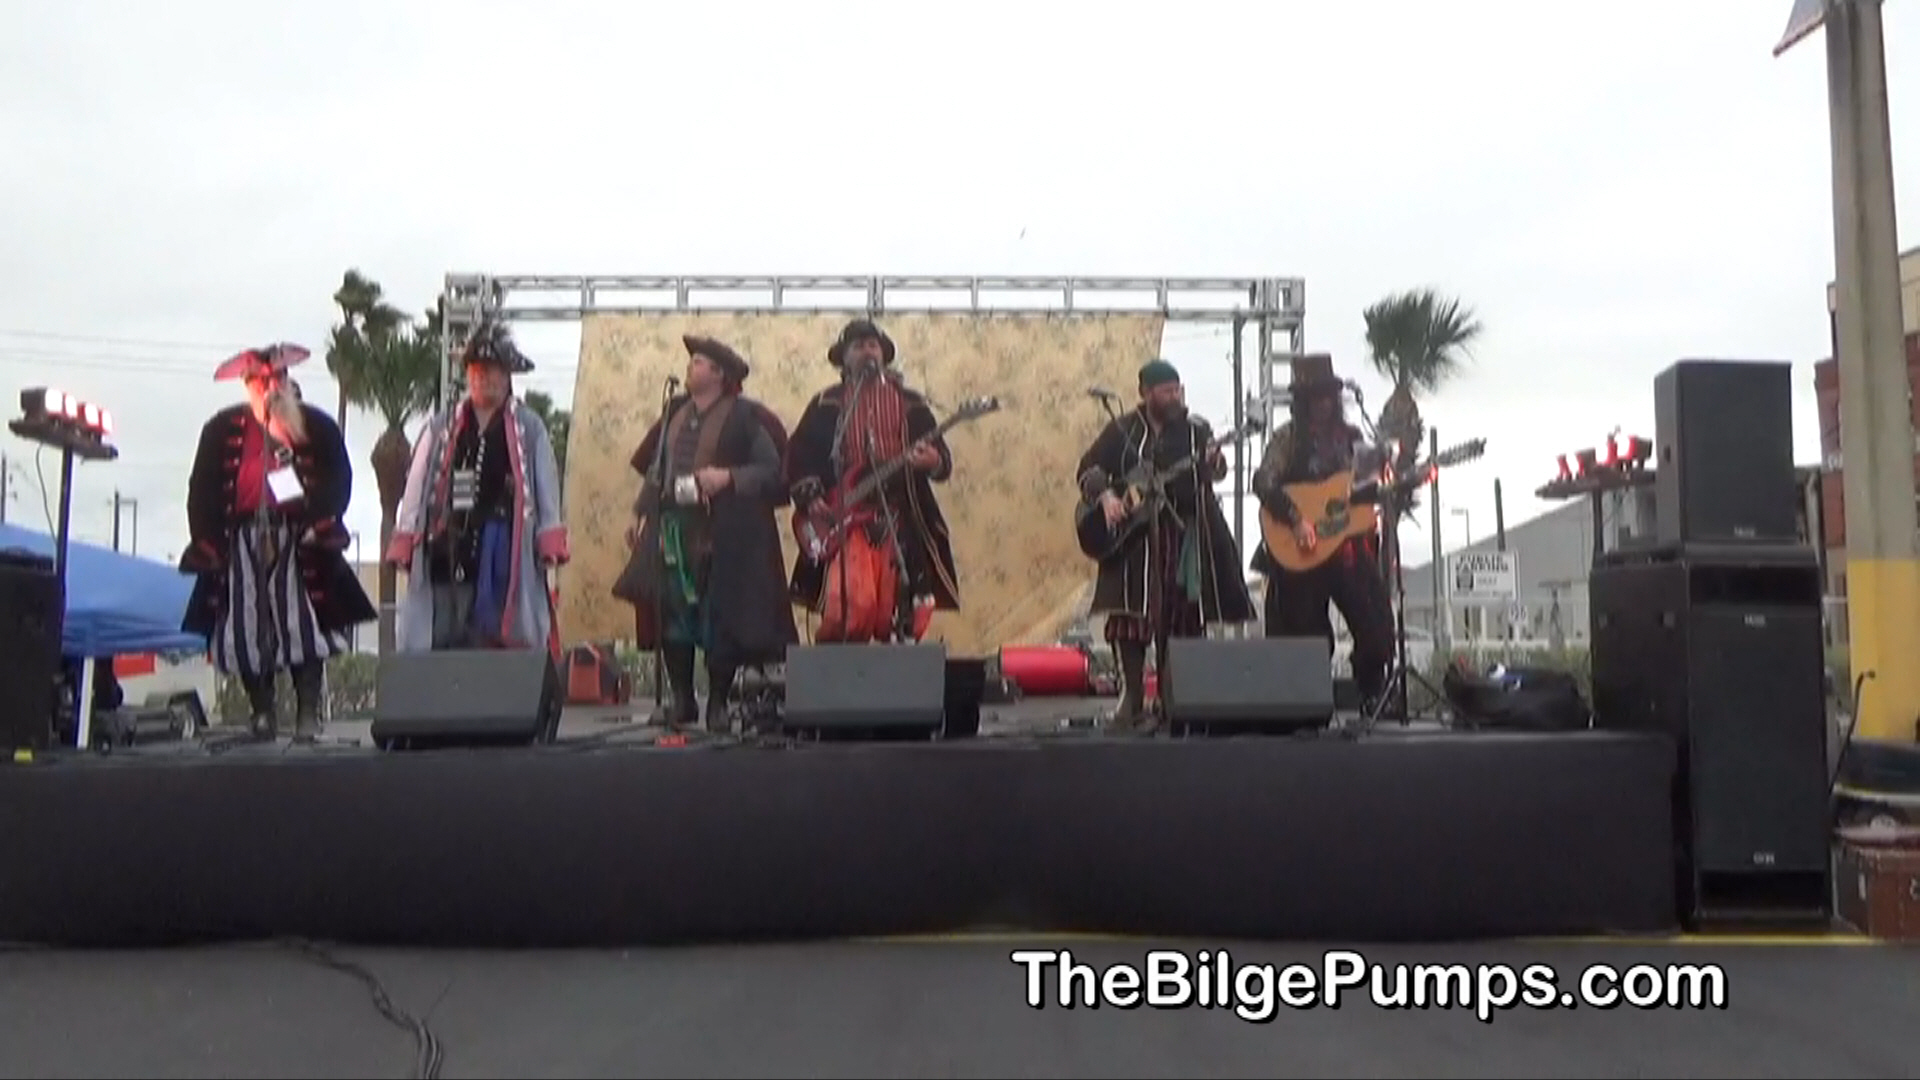 The Bilge Pumps - a Pirate Music Group for Your Inner Buccaneer